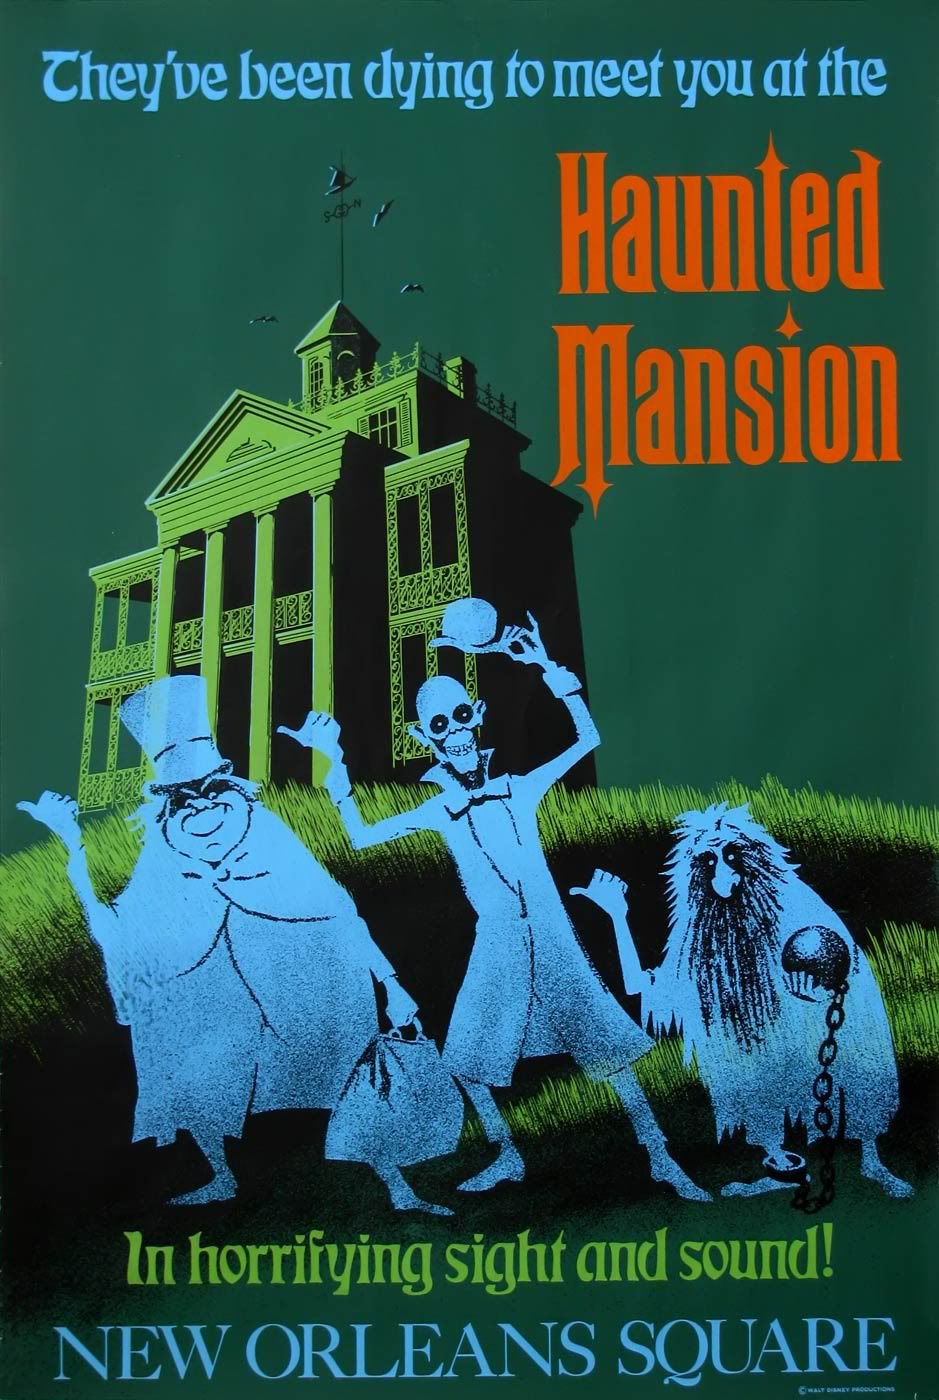 guillermo-del-toro-gives-updated-on-the-haunted-mansion